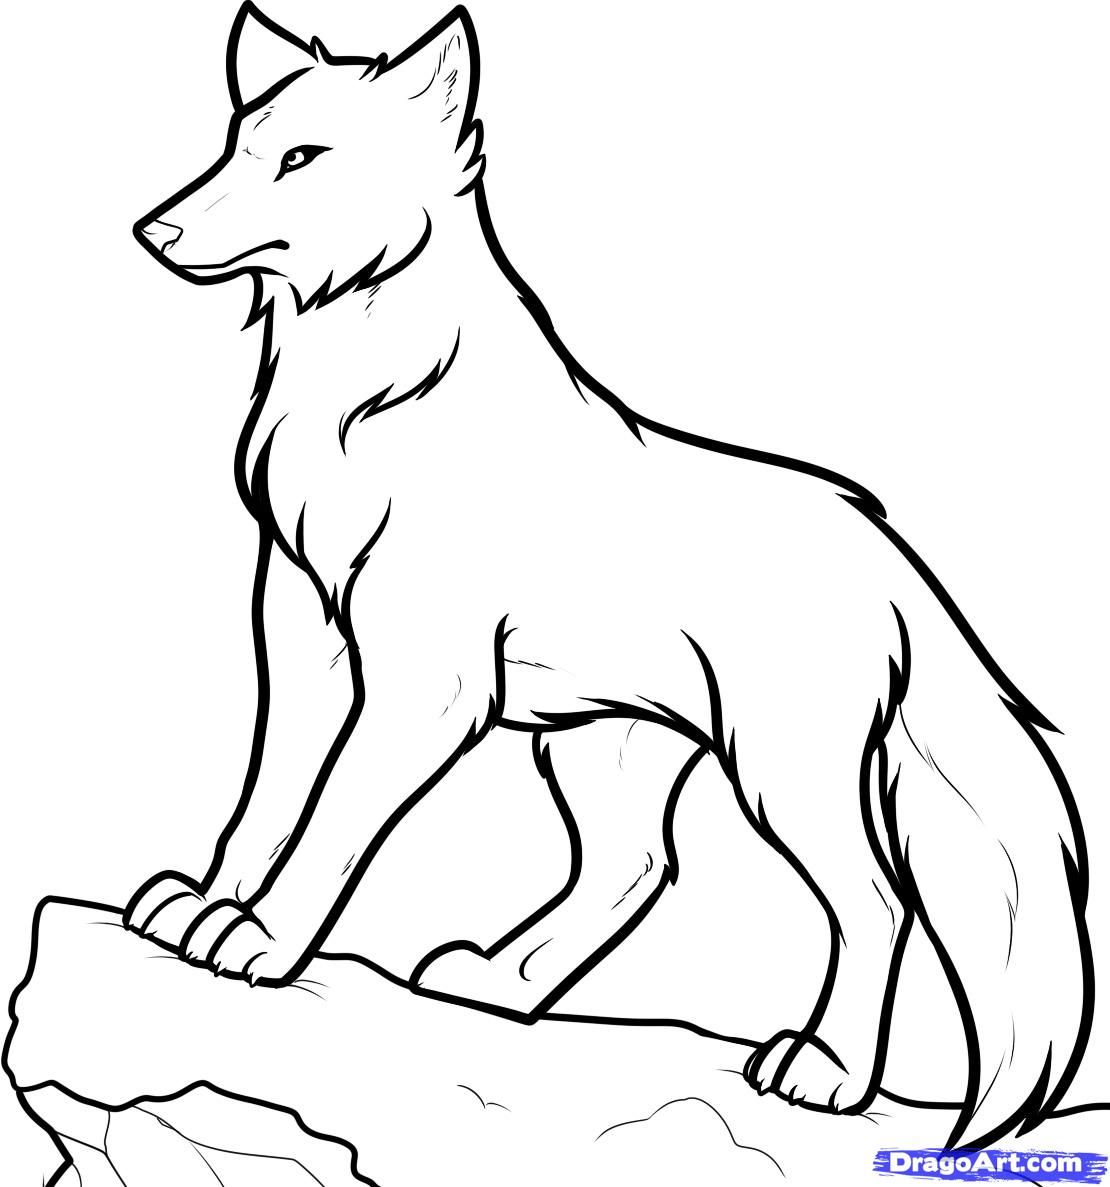 How To Draw Anime Wolves, Anime Wolves Step 14